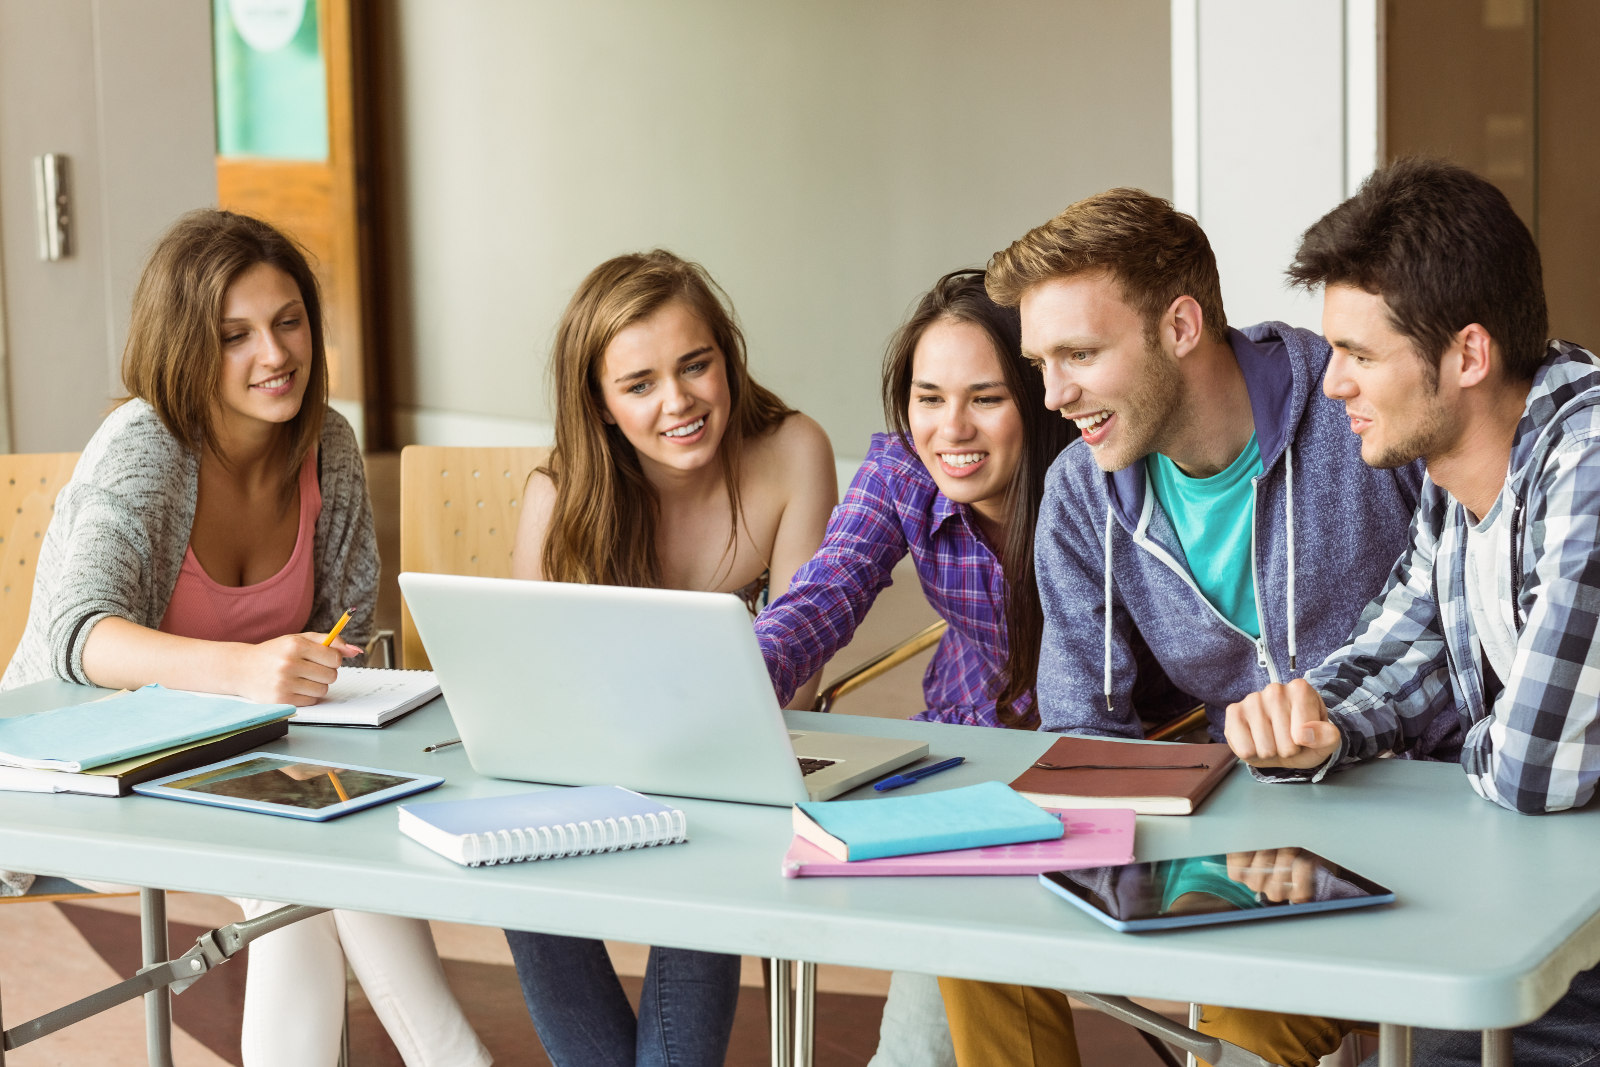 How do you write a personal statement to study abroad at a UK university?